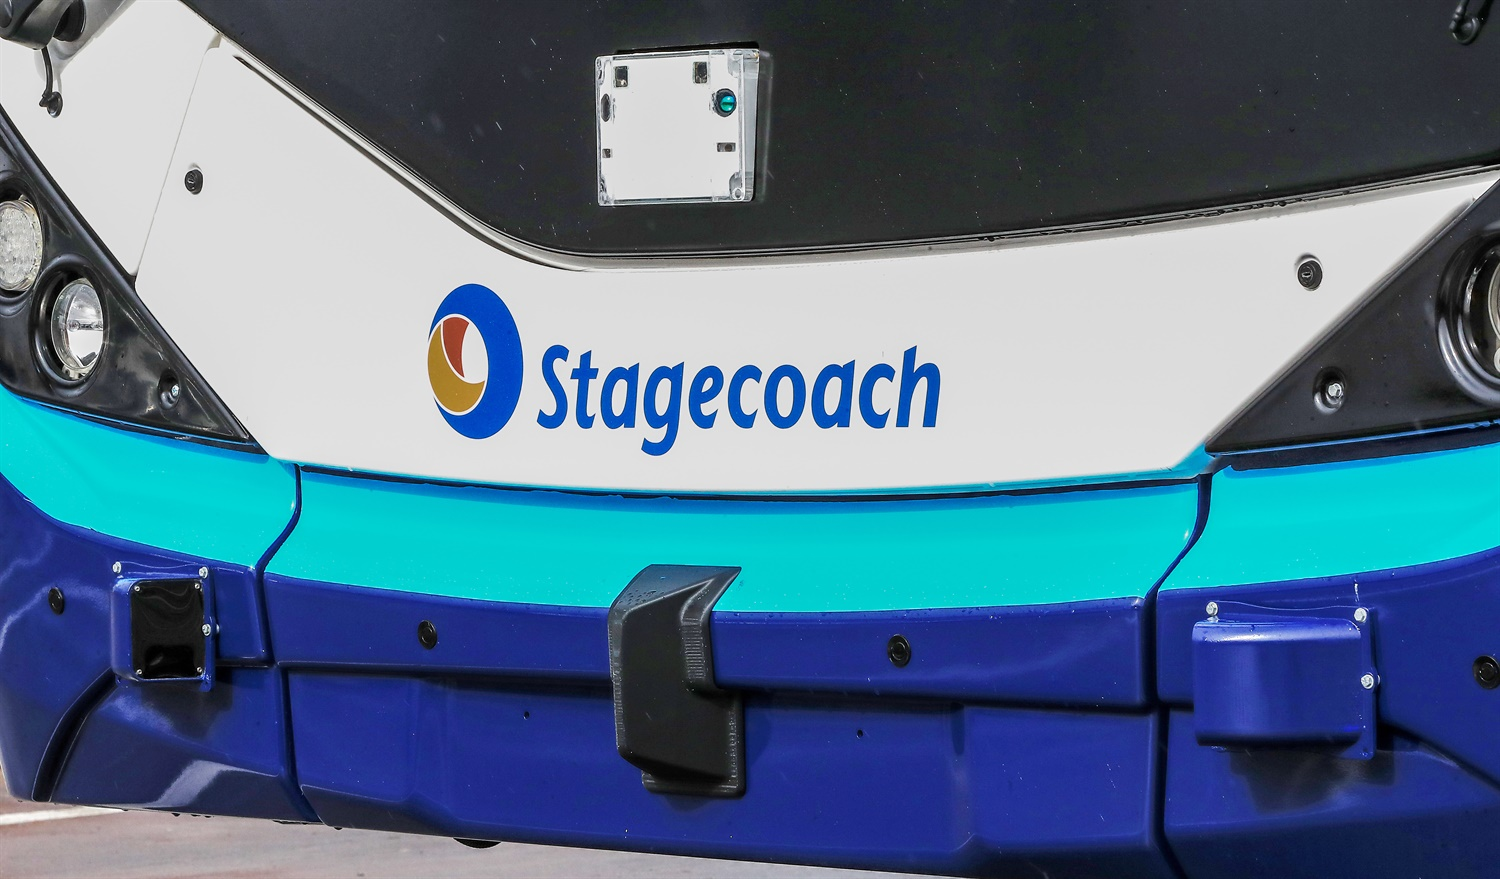 'Shocked' Stagecoach disqualified from three rail franchise bids in row over pensions